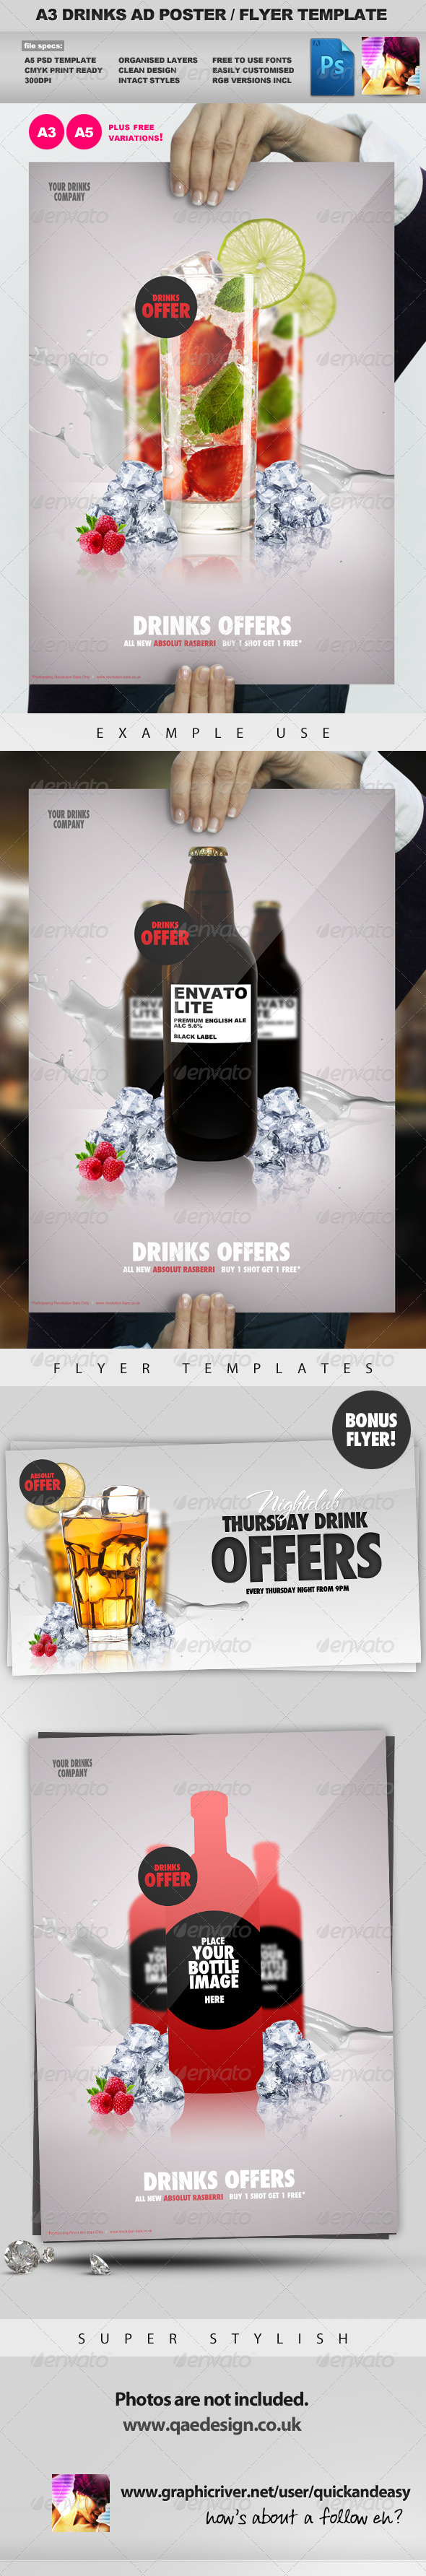 A3 Drinks Promotion Advertisement Poster Template - Commerce Flyers